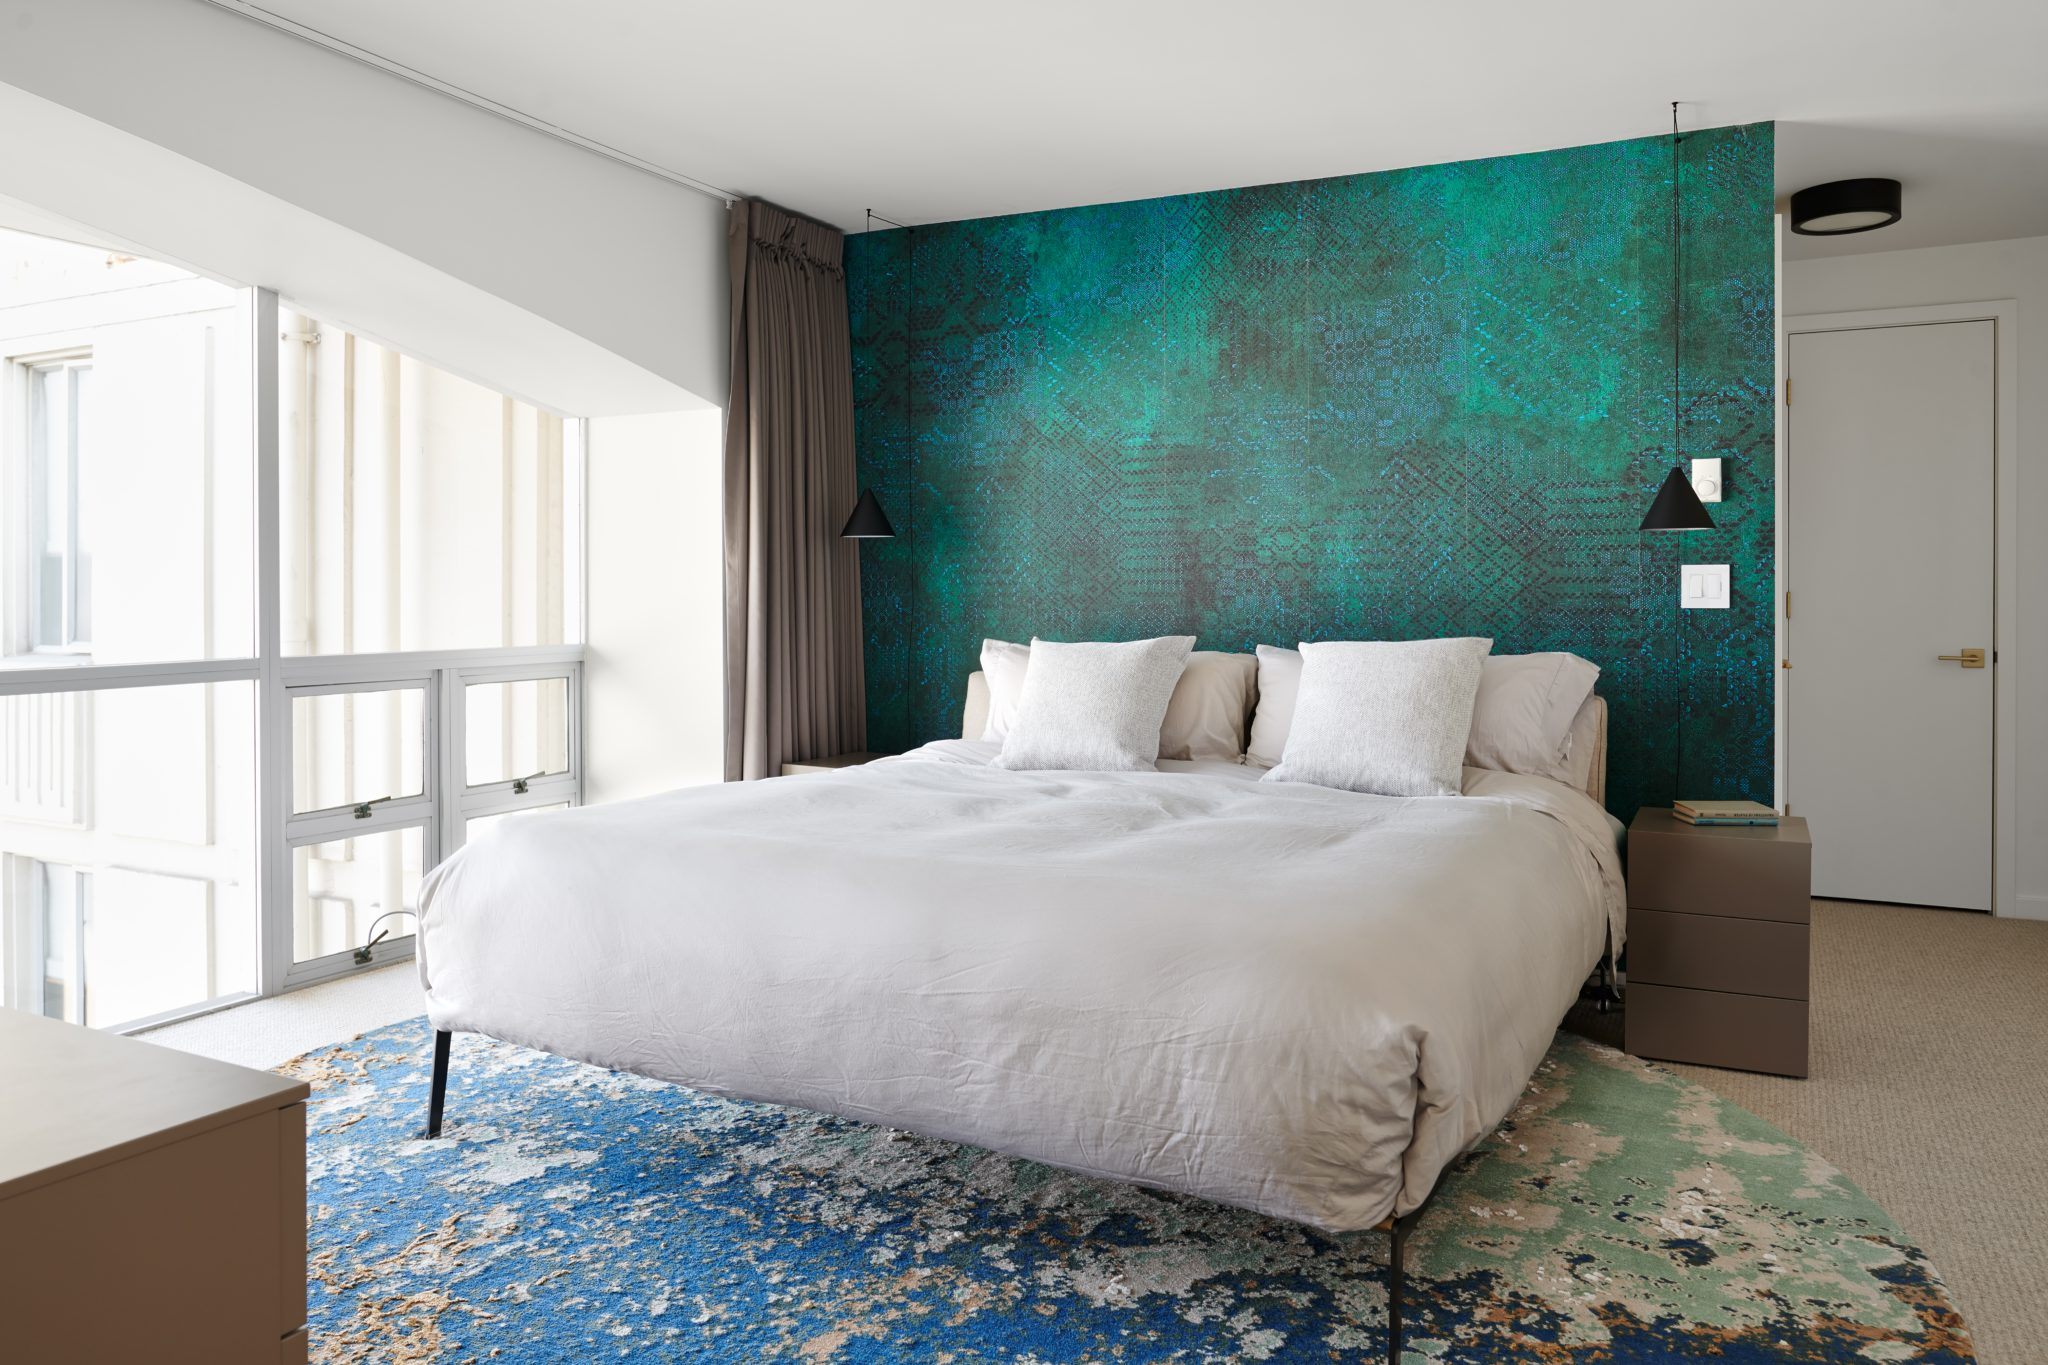 A peacock-coloredaccent wall, crafted by Wall&decò, juxtaposes with the steel frame of the Flexform bed designed by Citterio, as the wall'sshades of blue and green also integrate with the colors of the custom rug. Black-out drapery from Création Baumannshields the space from morning light when necessary. The night stands are from Jesse, and the string lights are from Flos.